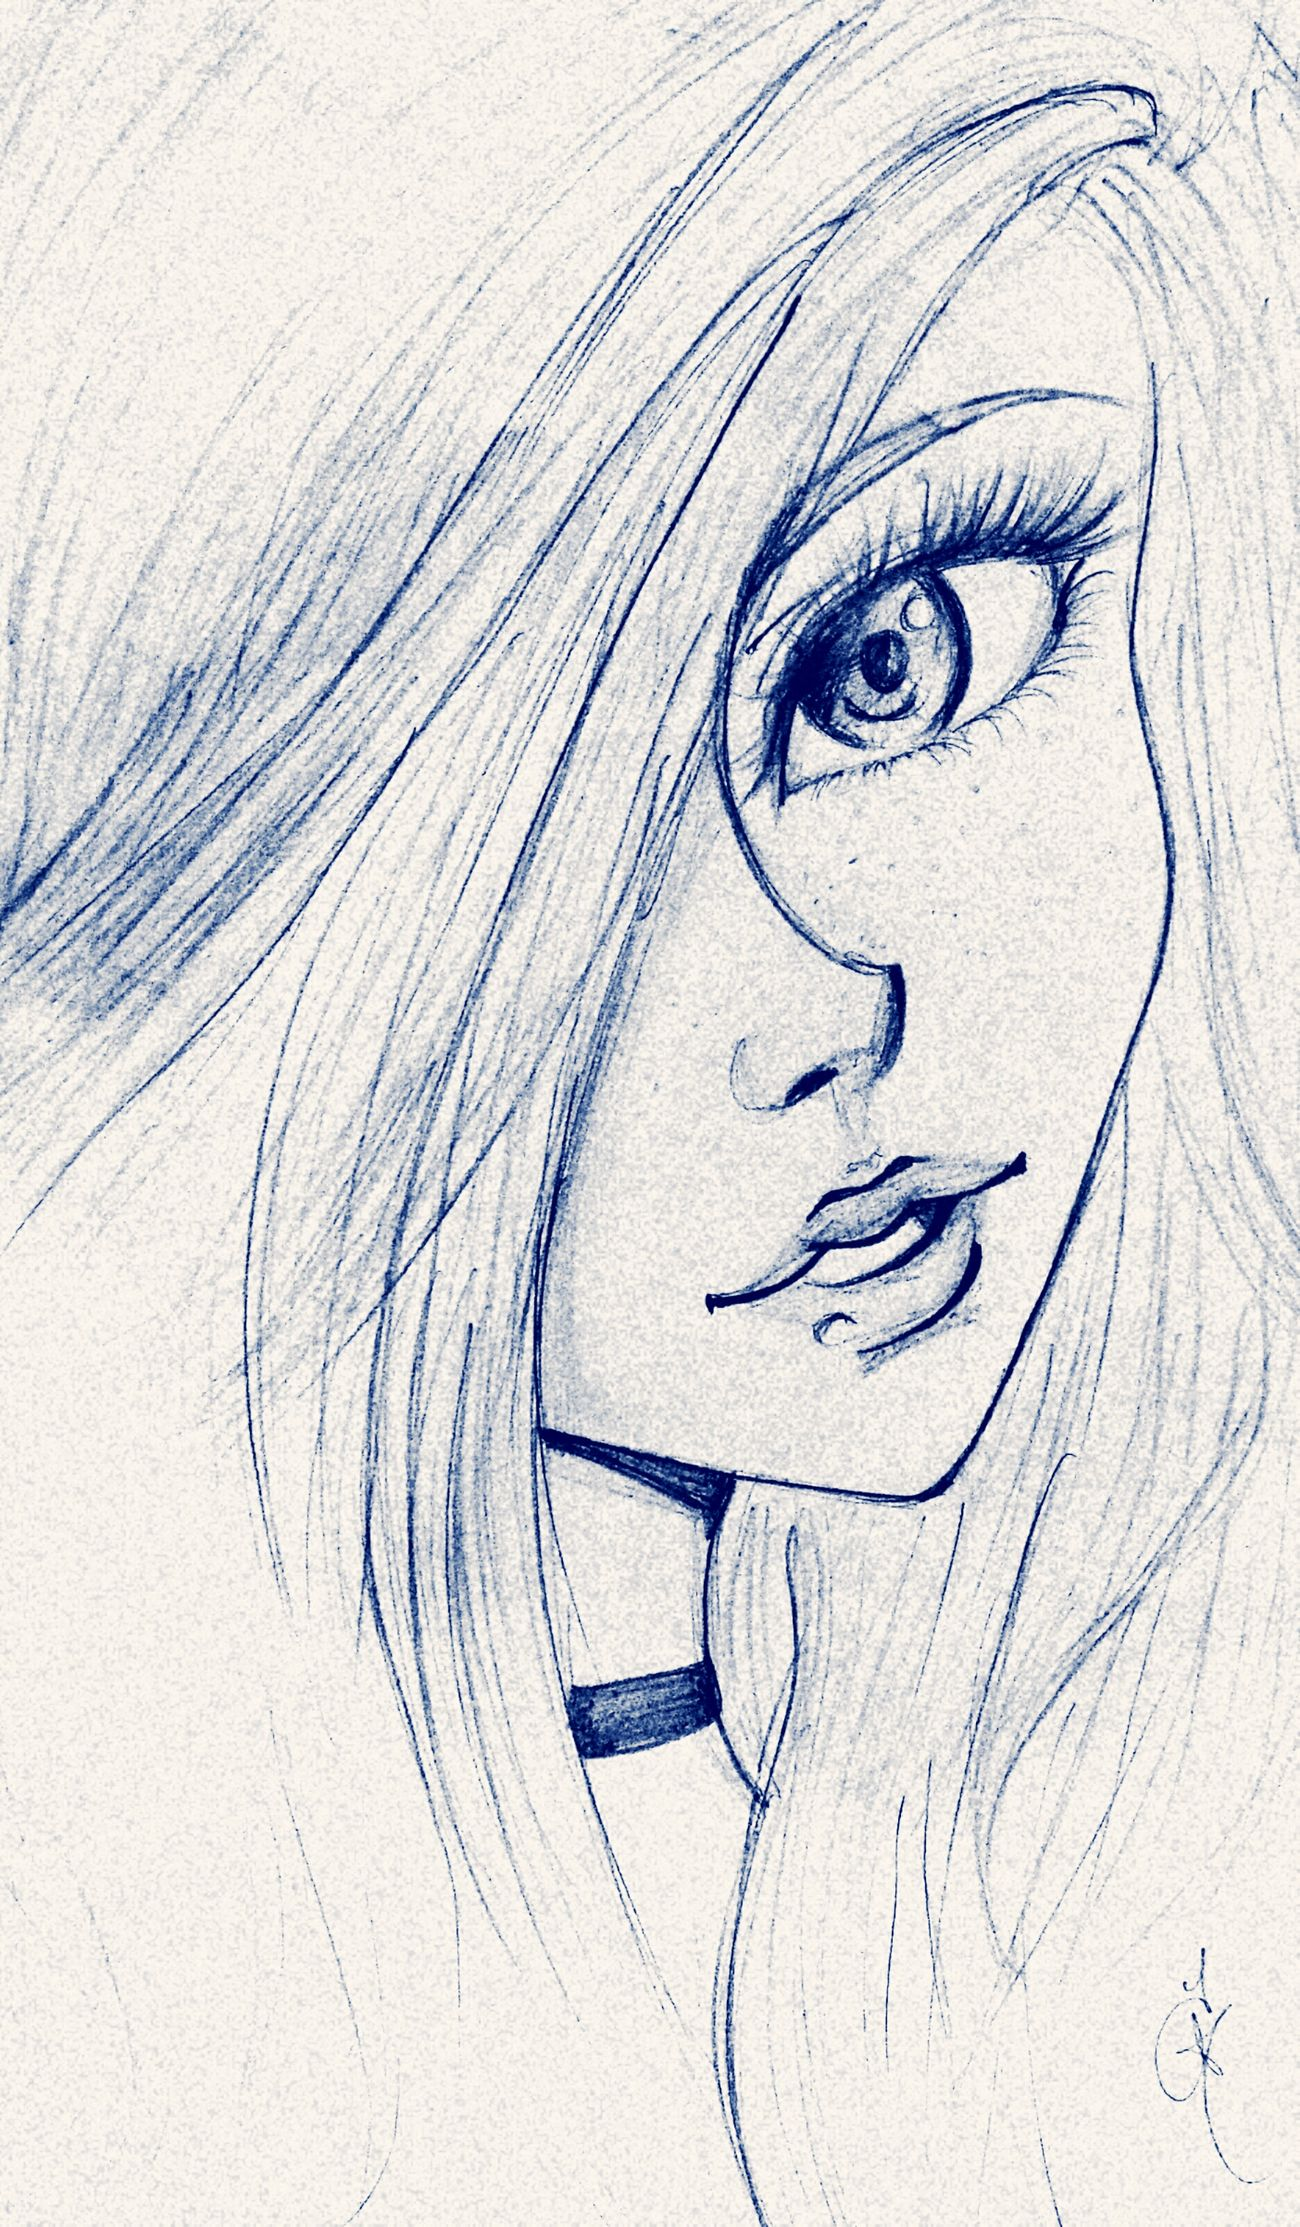 ❤after class doodle❤ Close-up Human Face One Person Young Adult Portrait Paper Adult Adults Only Beautiful Woman Only Women Young Women People Day Anime Sketch Drawings Pencil Pencil Drawing Manga Mangart Bored First Eyeem Photo EyeEmNewHere EyeEm Best Edits